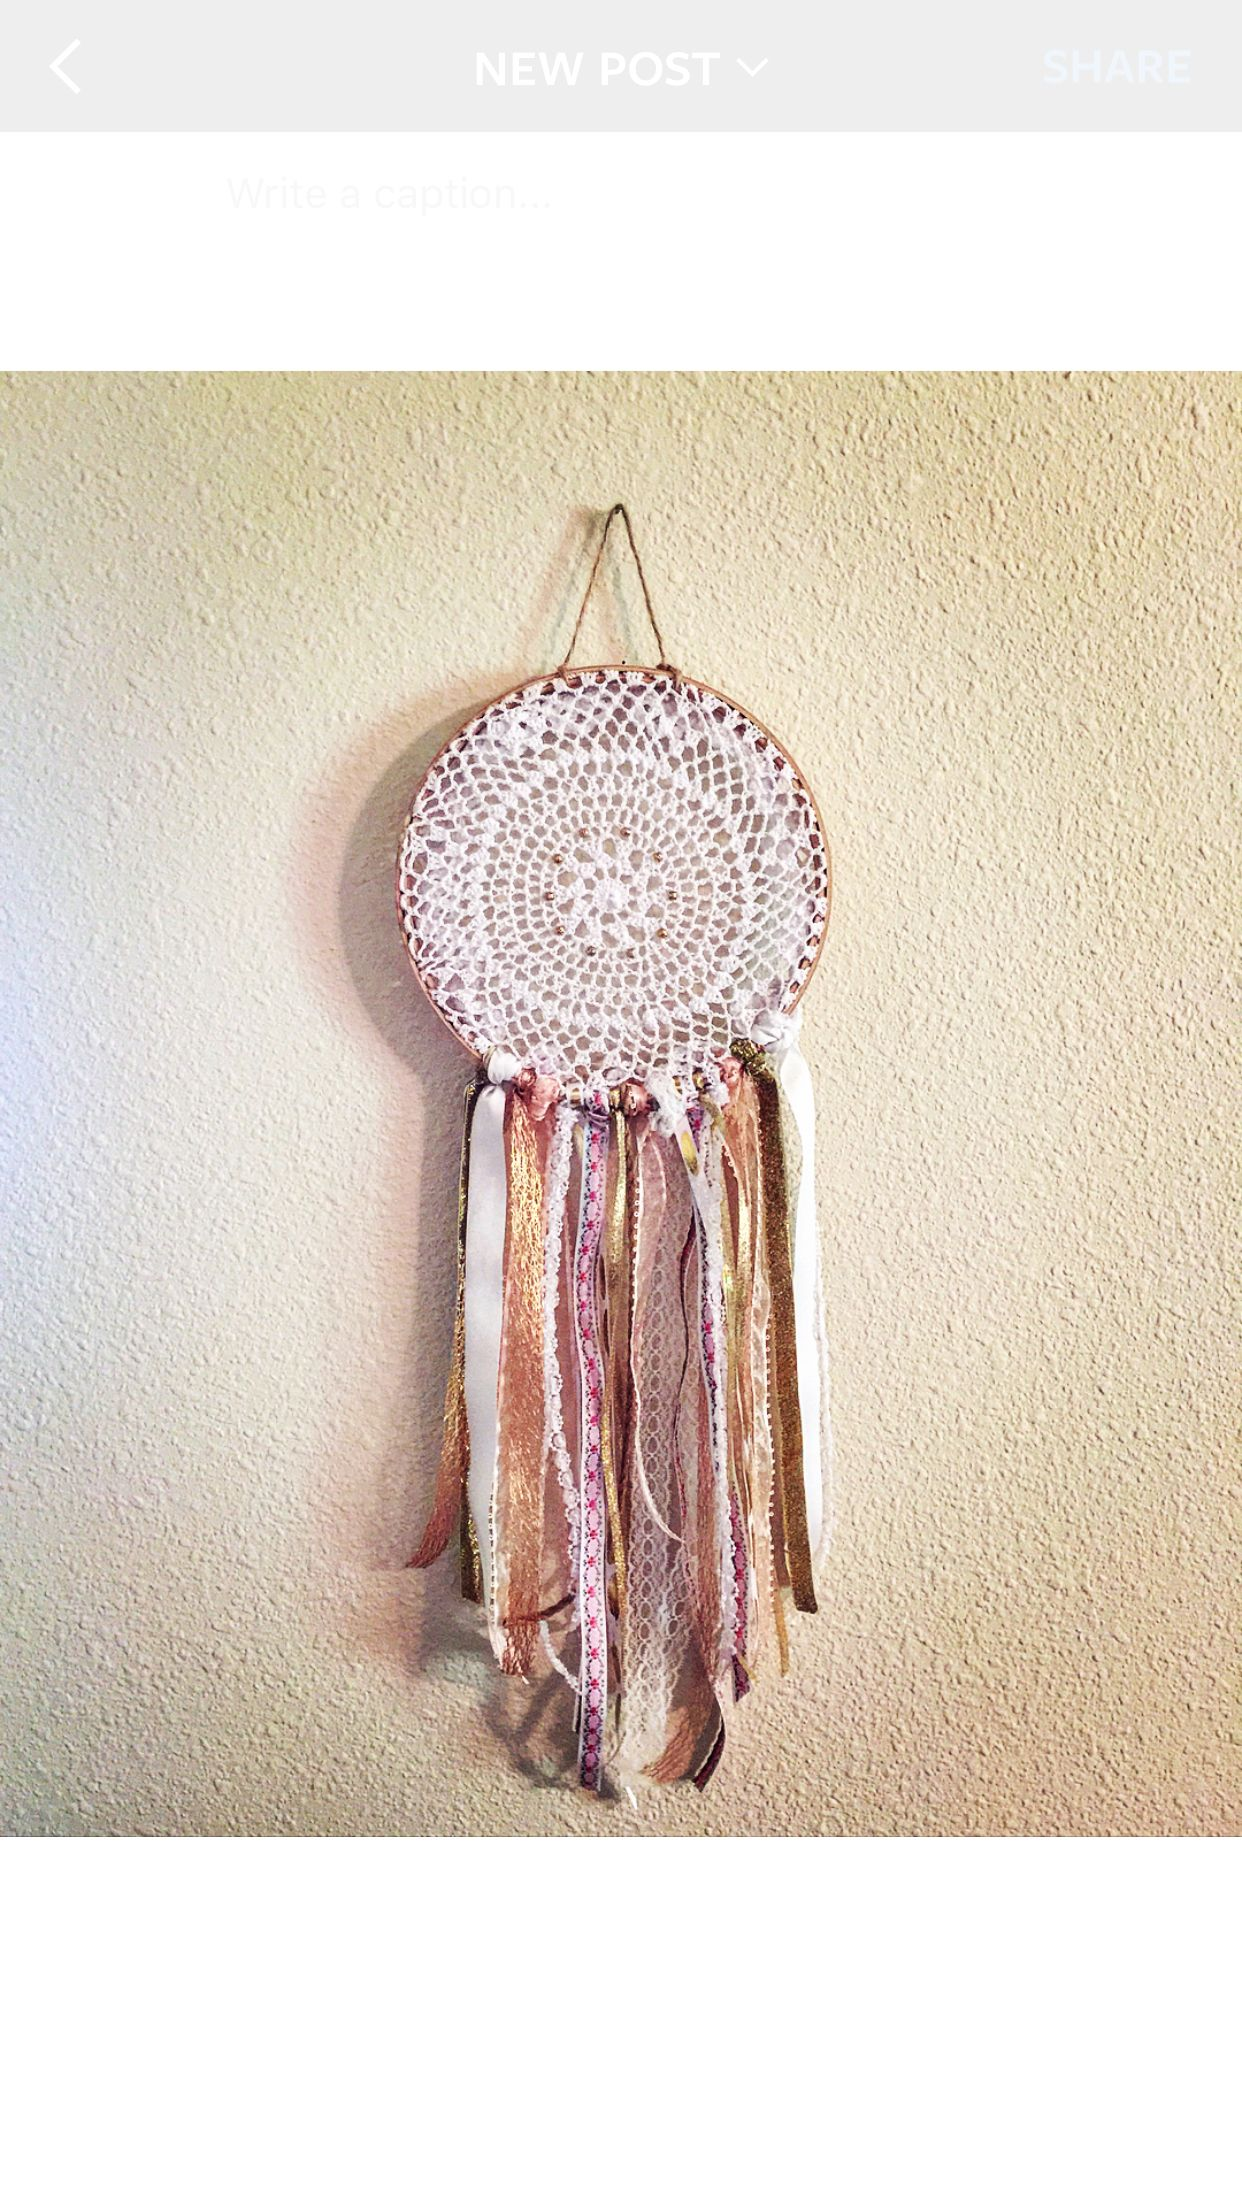 My homemade dreamcatcher. About $15 in supplies if you use the student discount at Jo Ann's. #diy #dreamcatcher #lace